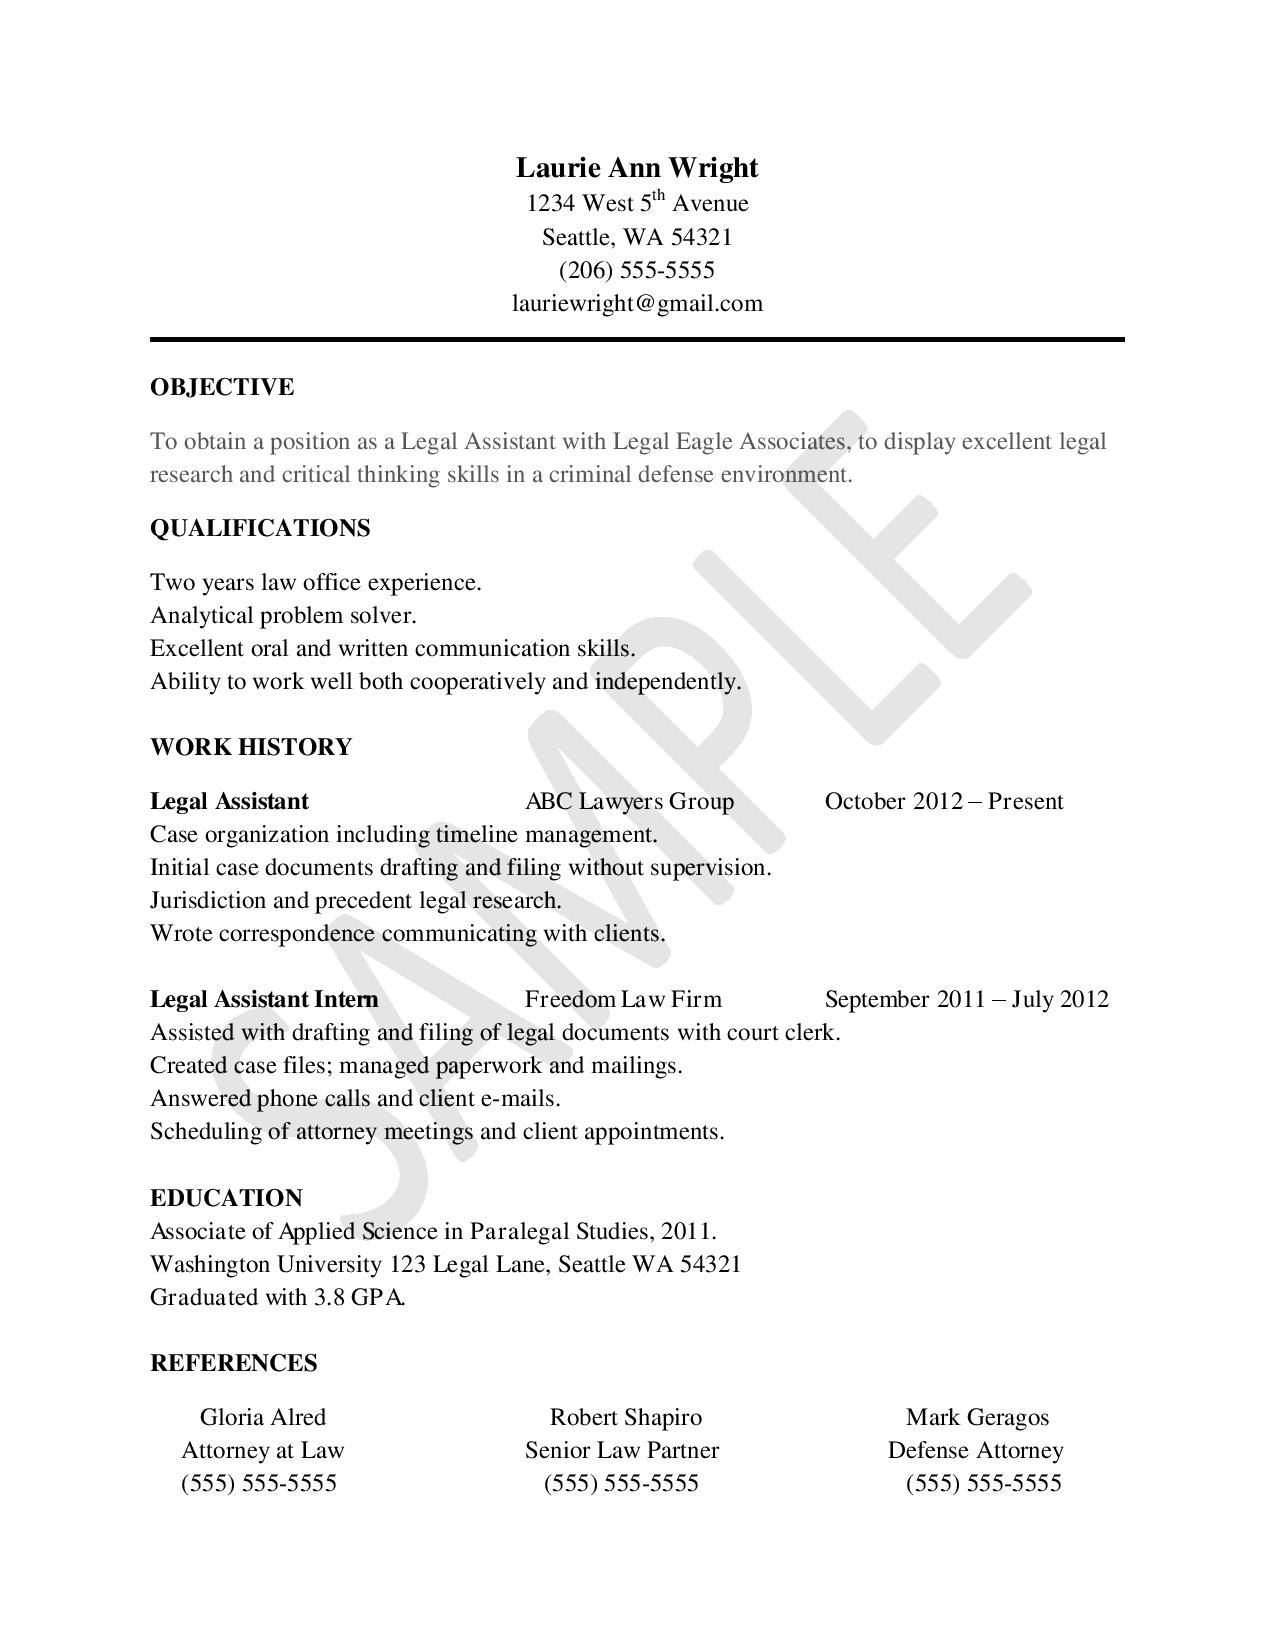 Sample Resume For Legal Assistants Legal Assistant Tips